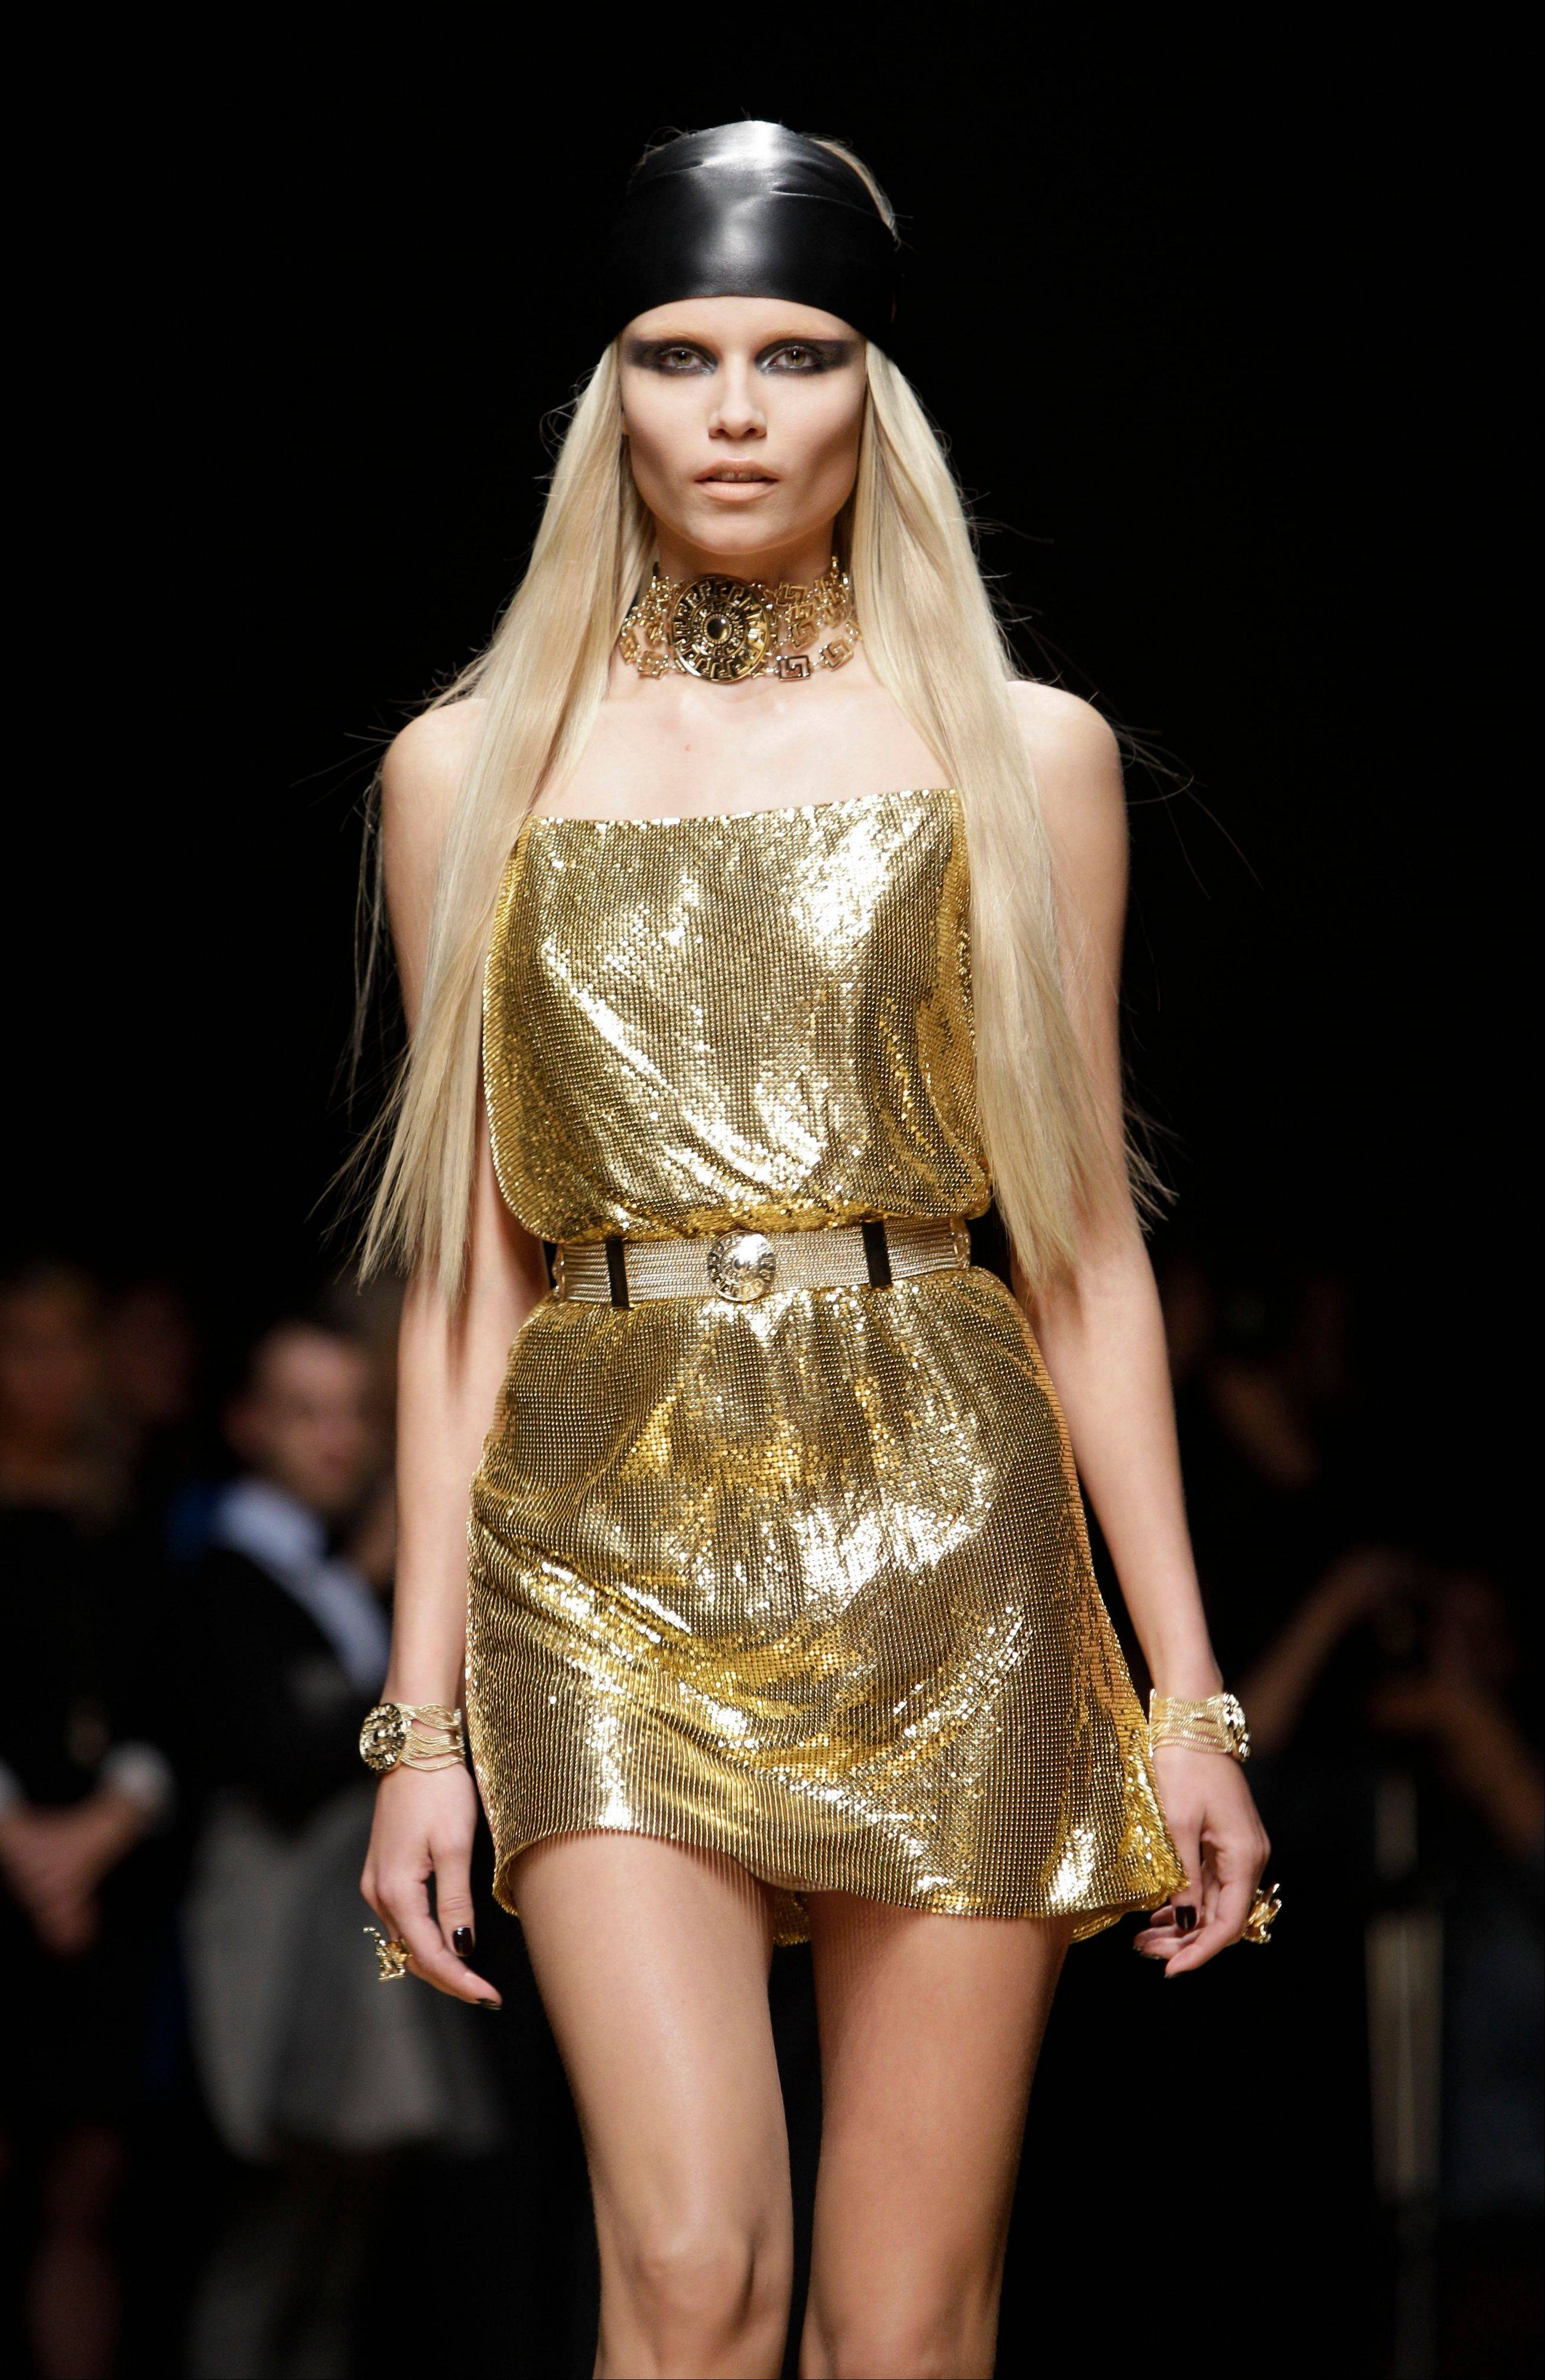 A model walks the runway during the Versace for H&M fashion show in New York.